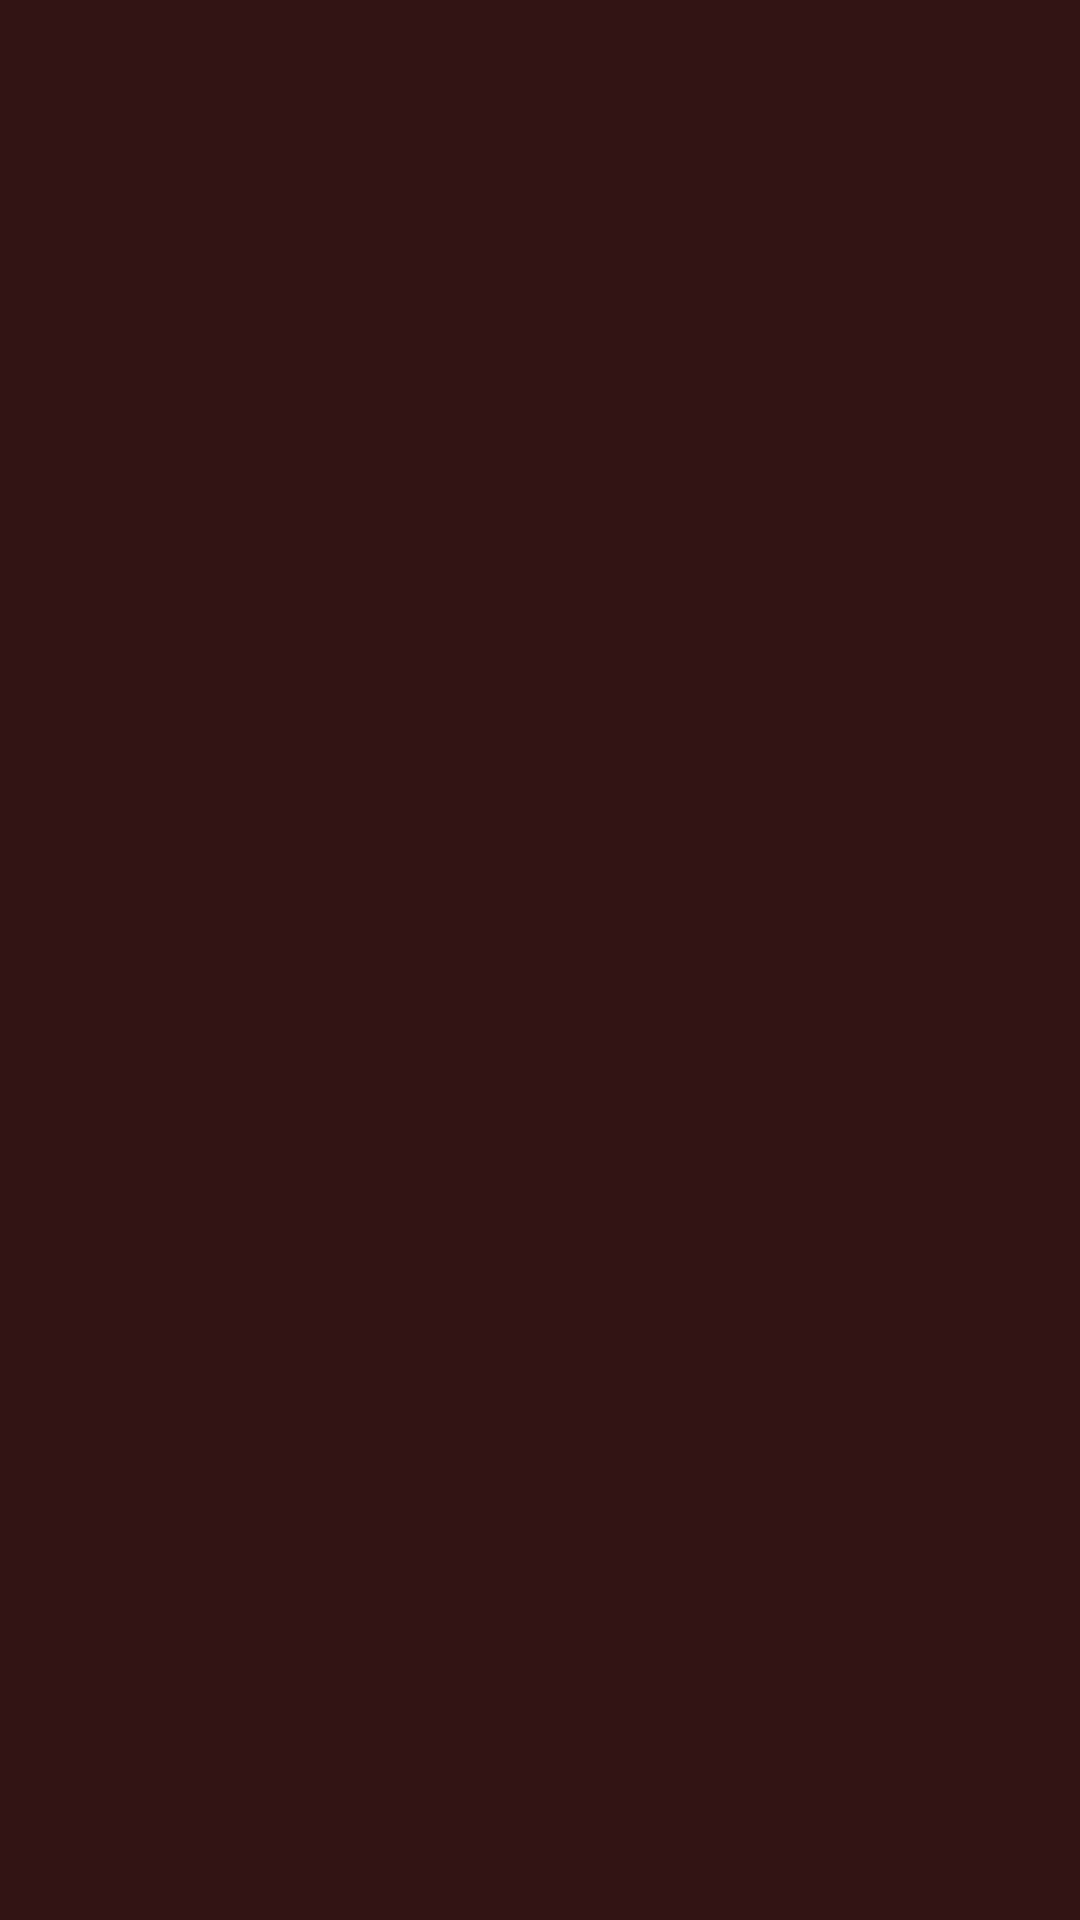 1080x1920 Seal Brown Solid Color Background